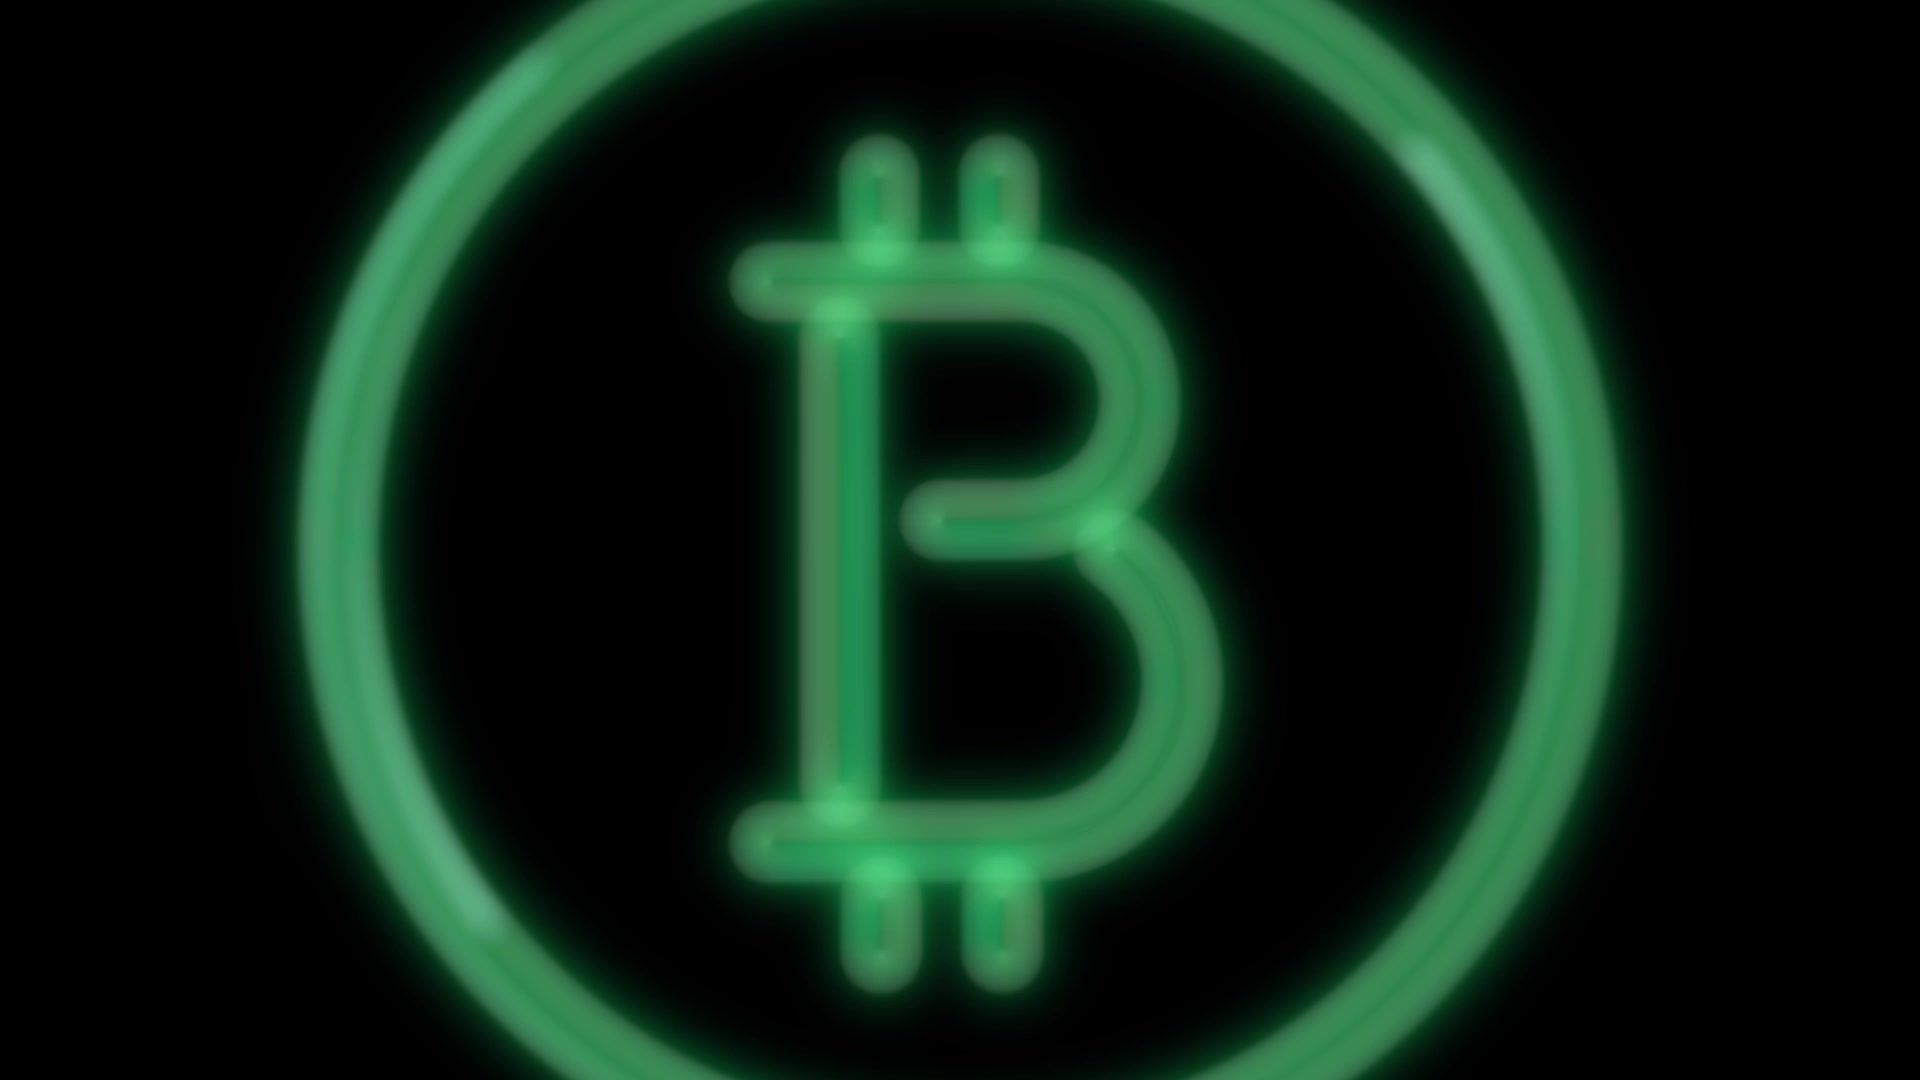 Neon Flickering Green Cryptocurrency Bitcoin Logo Alpha Channel Premultiplied Stock Footage Cryptocurrency Bitcoin Green Neo Bitcoin Logo Neon Cryptocurrency